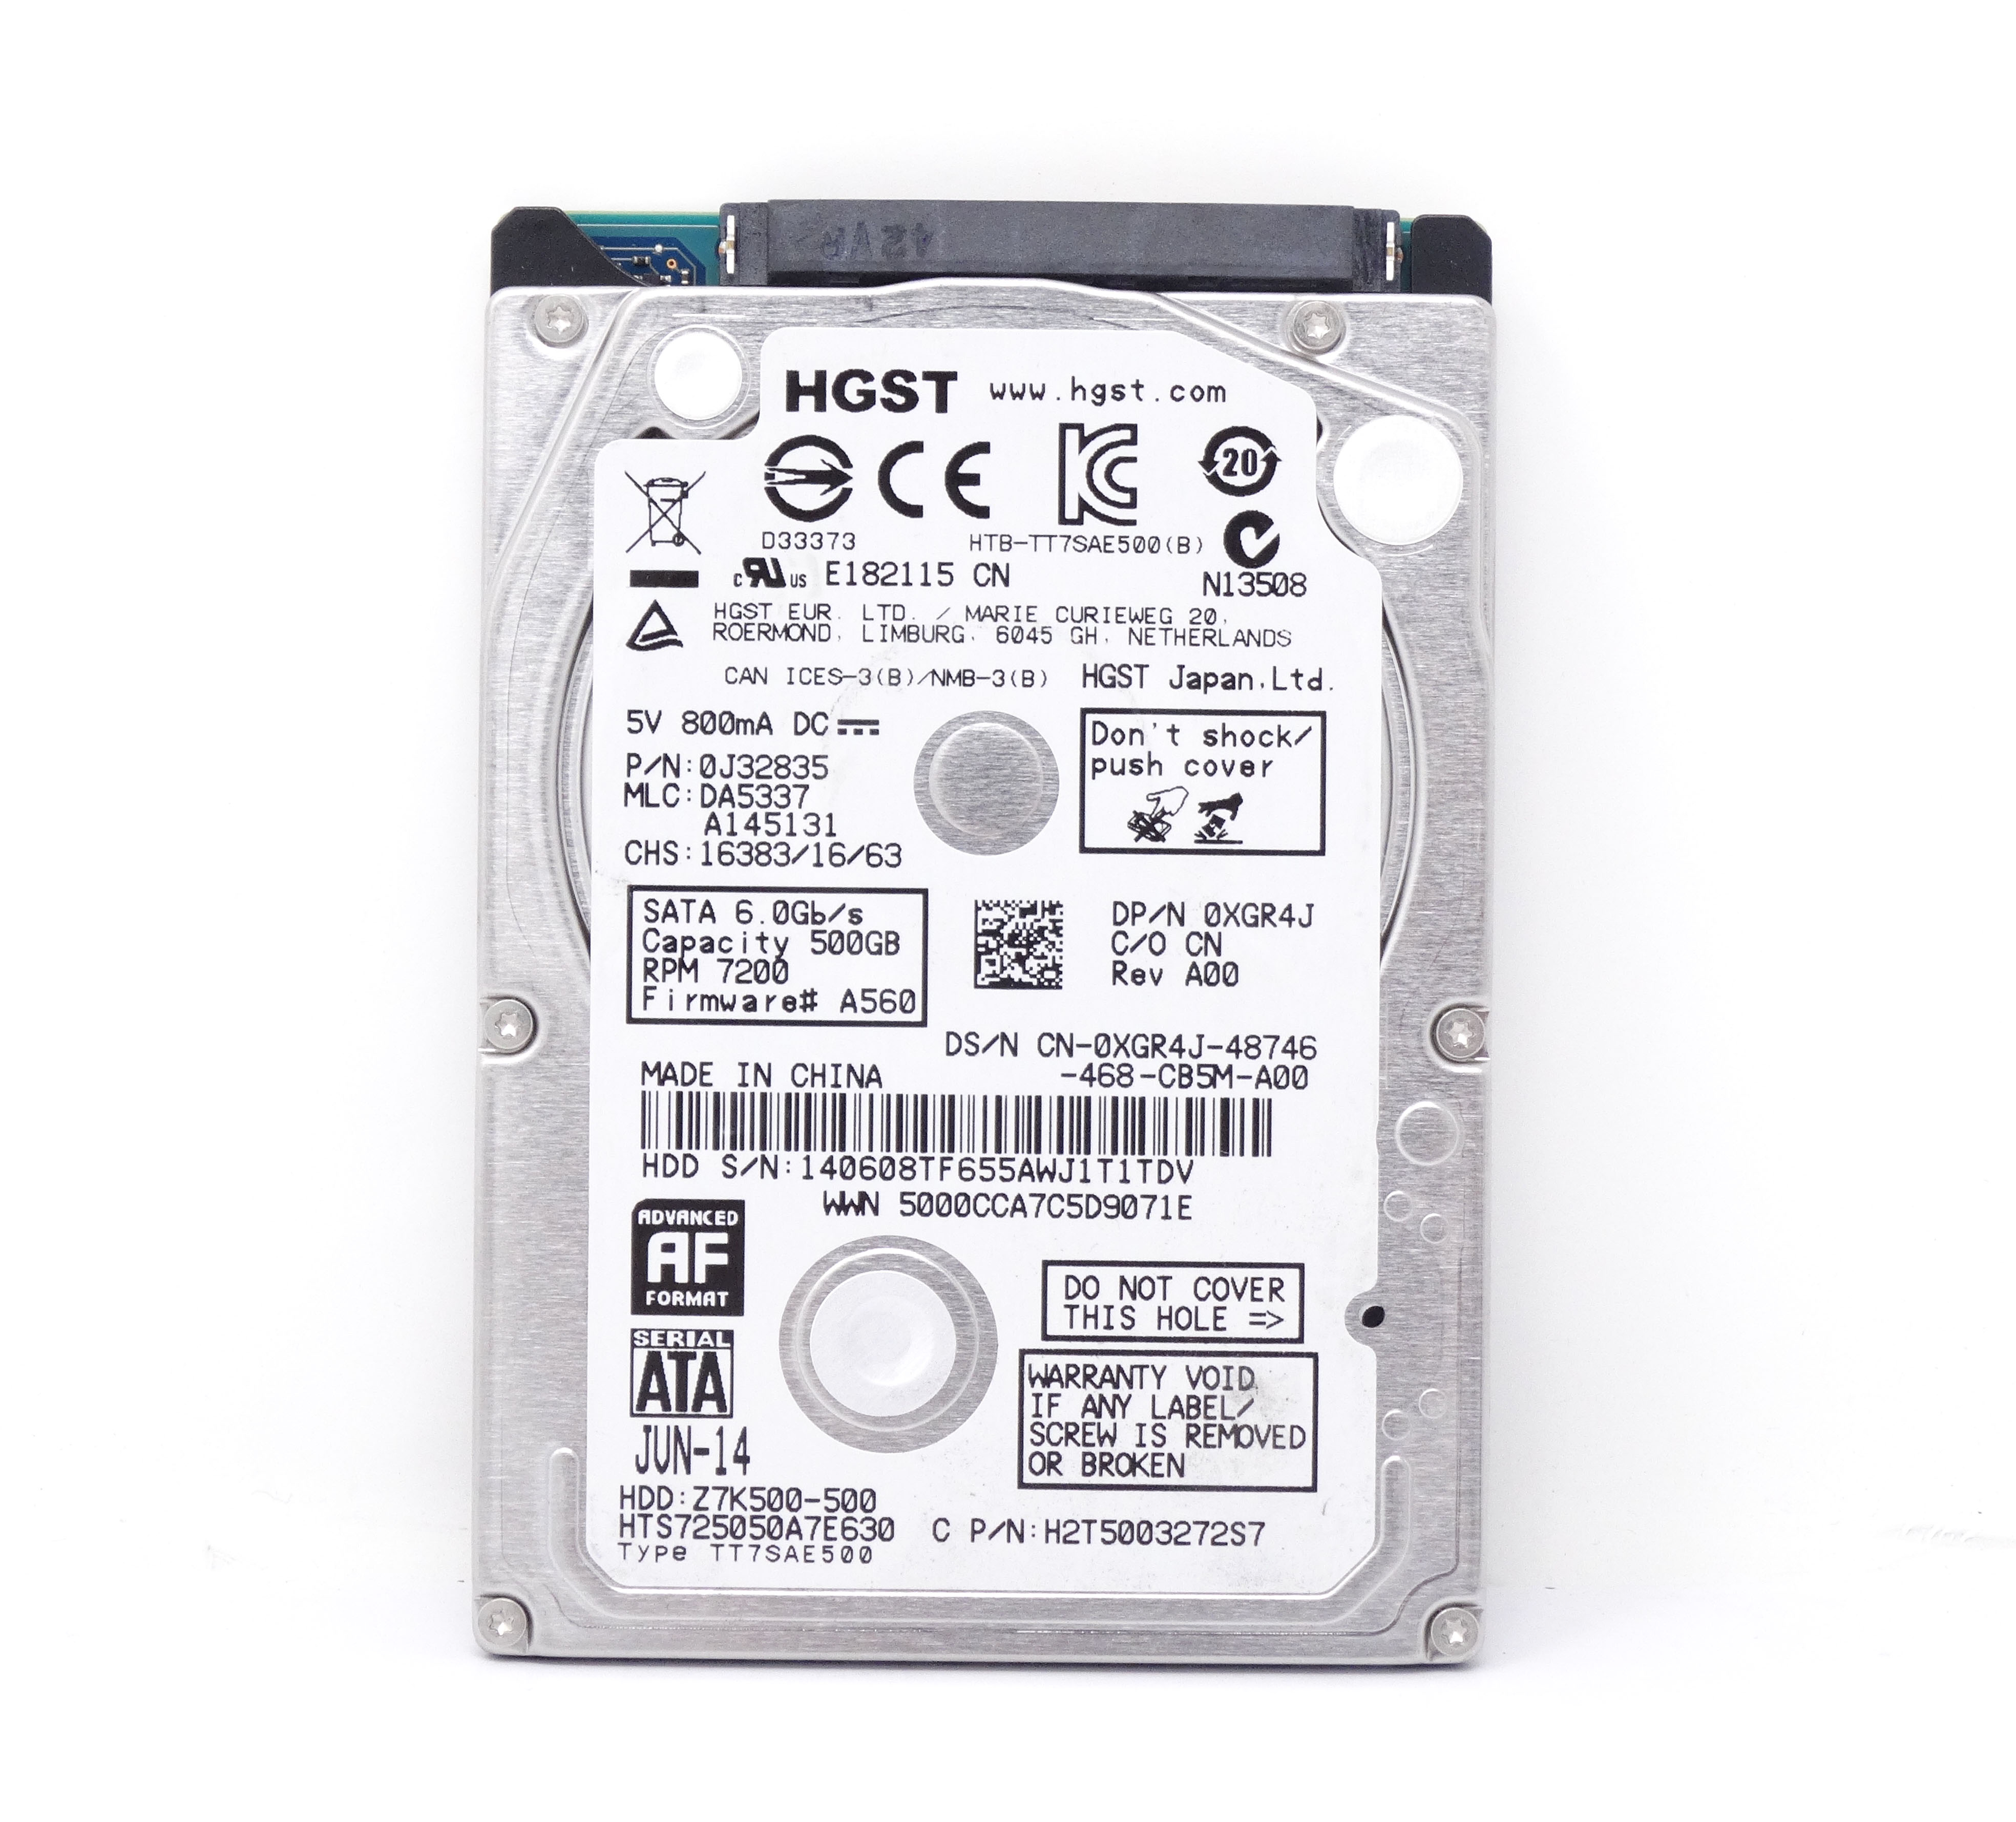 Details about XGR4J DELL 500GB 7 2K 6GBPS 2 5'' SATA LAPTOP HARD DRIVE